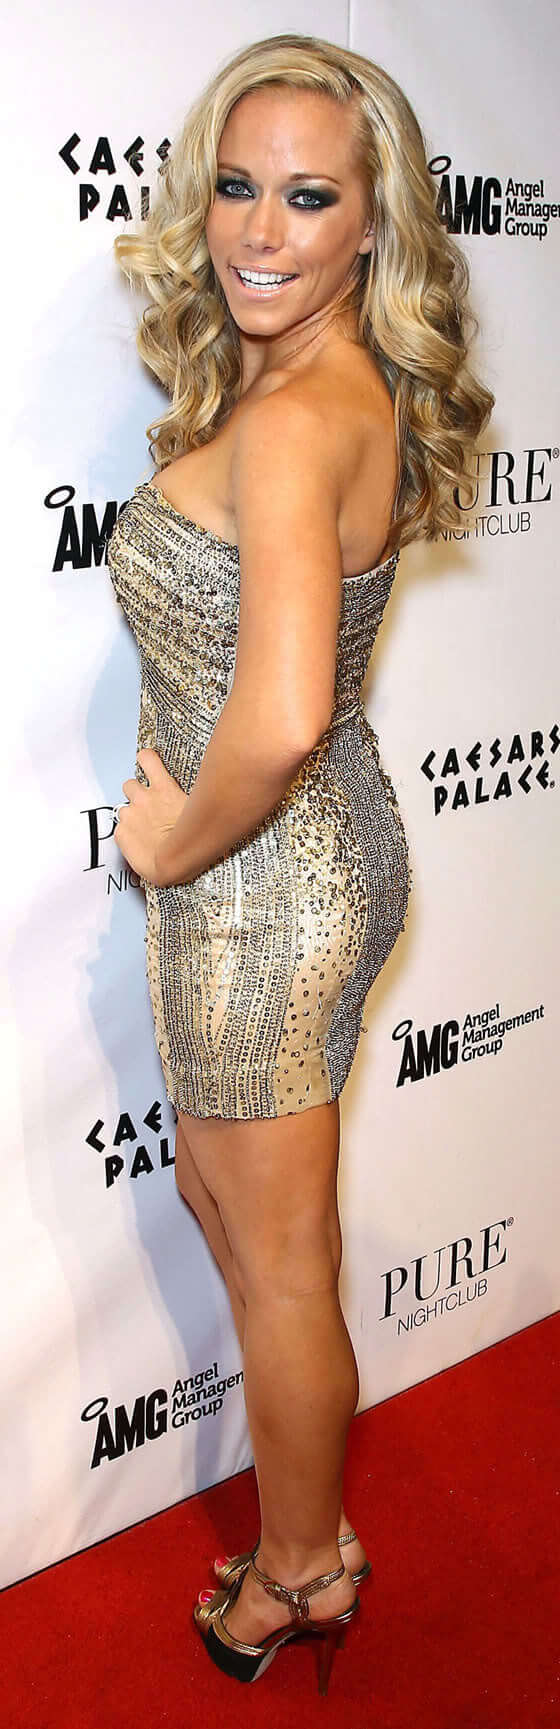 kendra wilkinson butt pictures